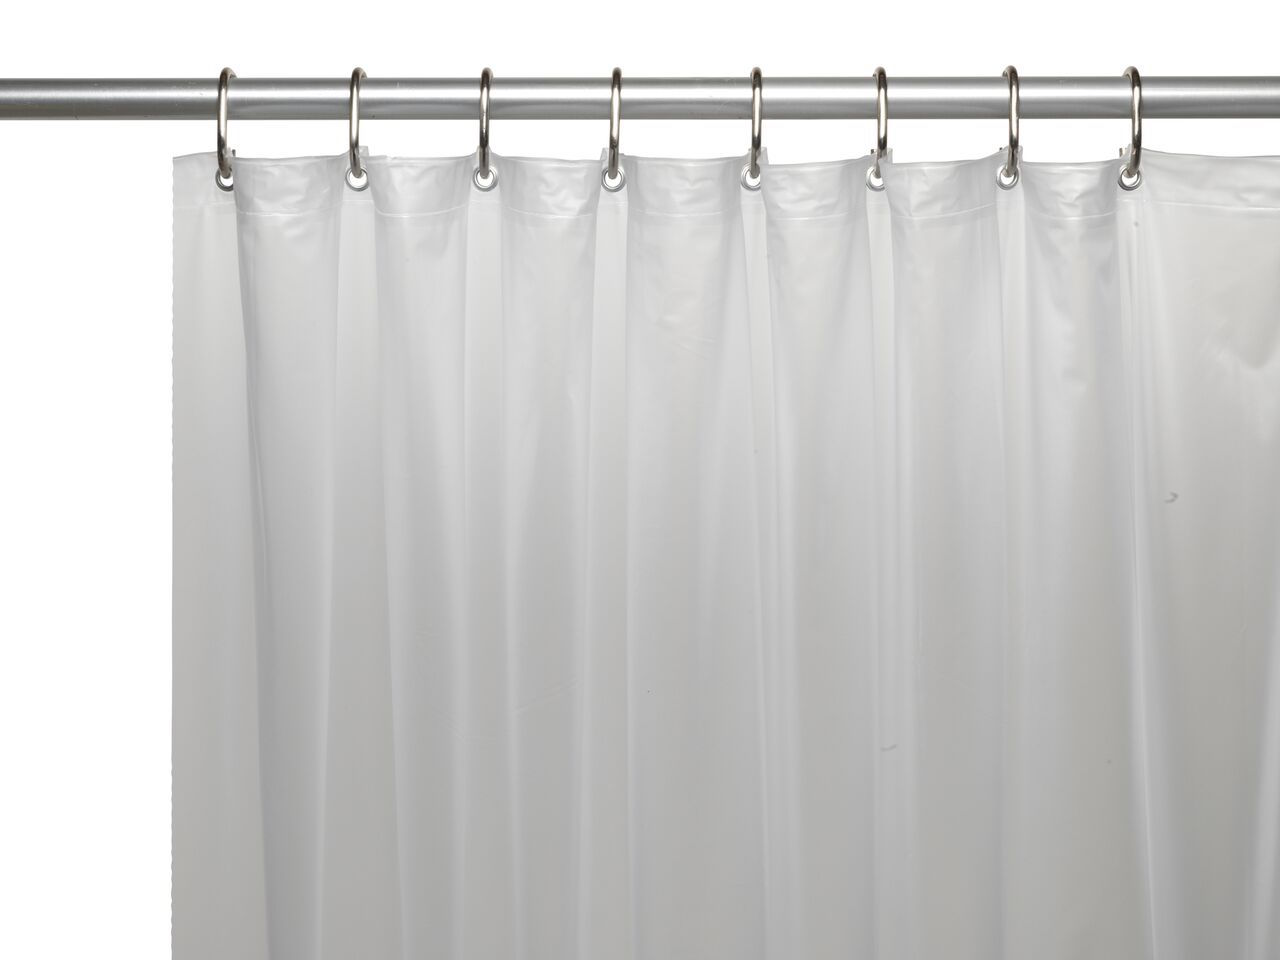 Shower Curtain Liner Extra Long | How to Clean Shower Curtain Liner | Shower Curtain Liner